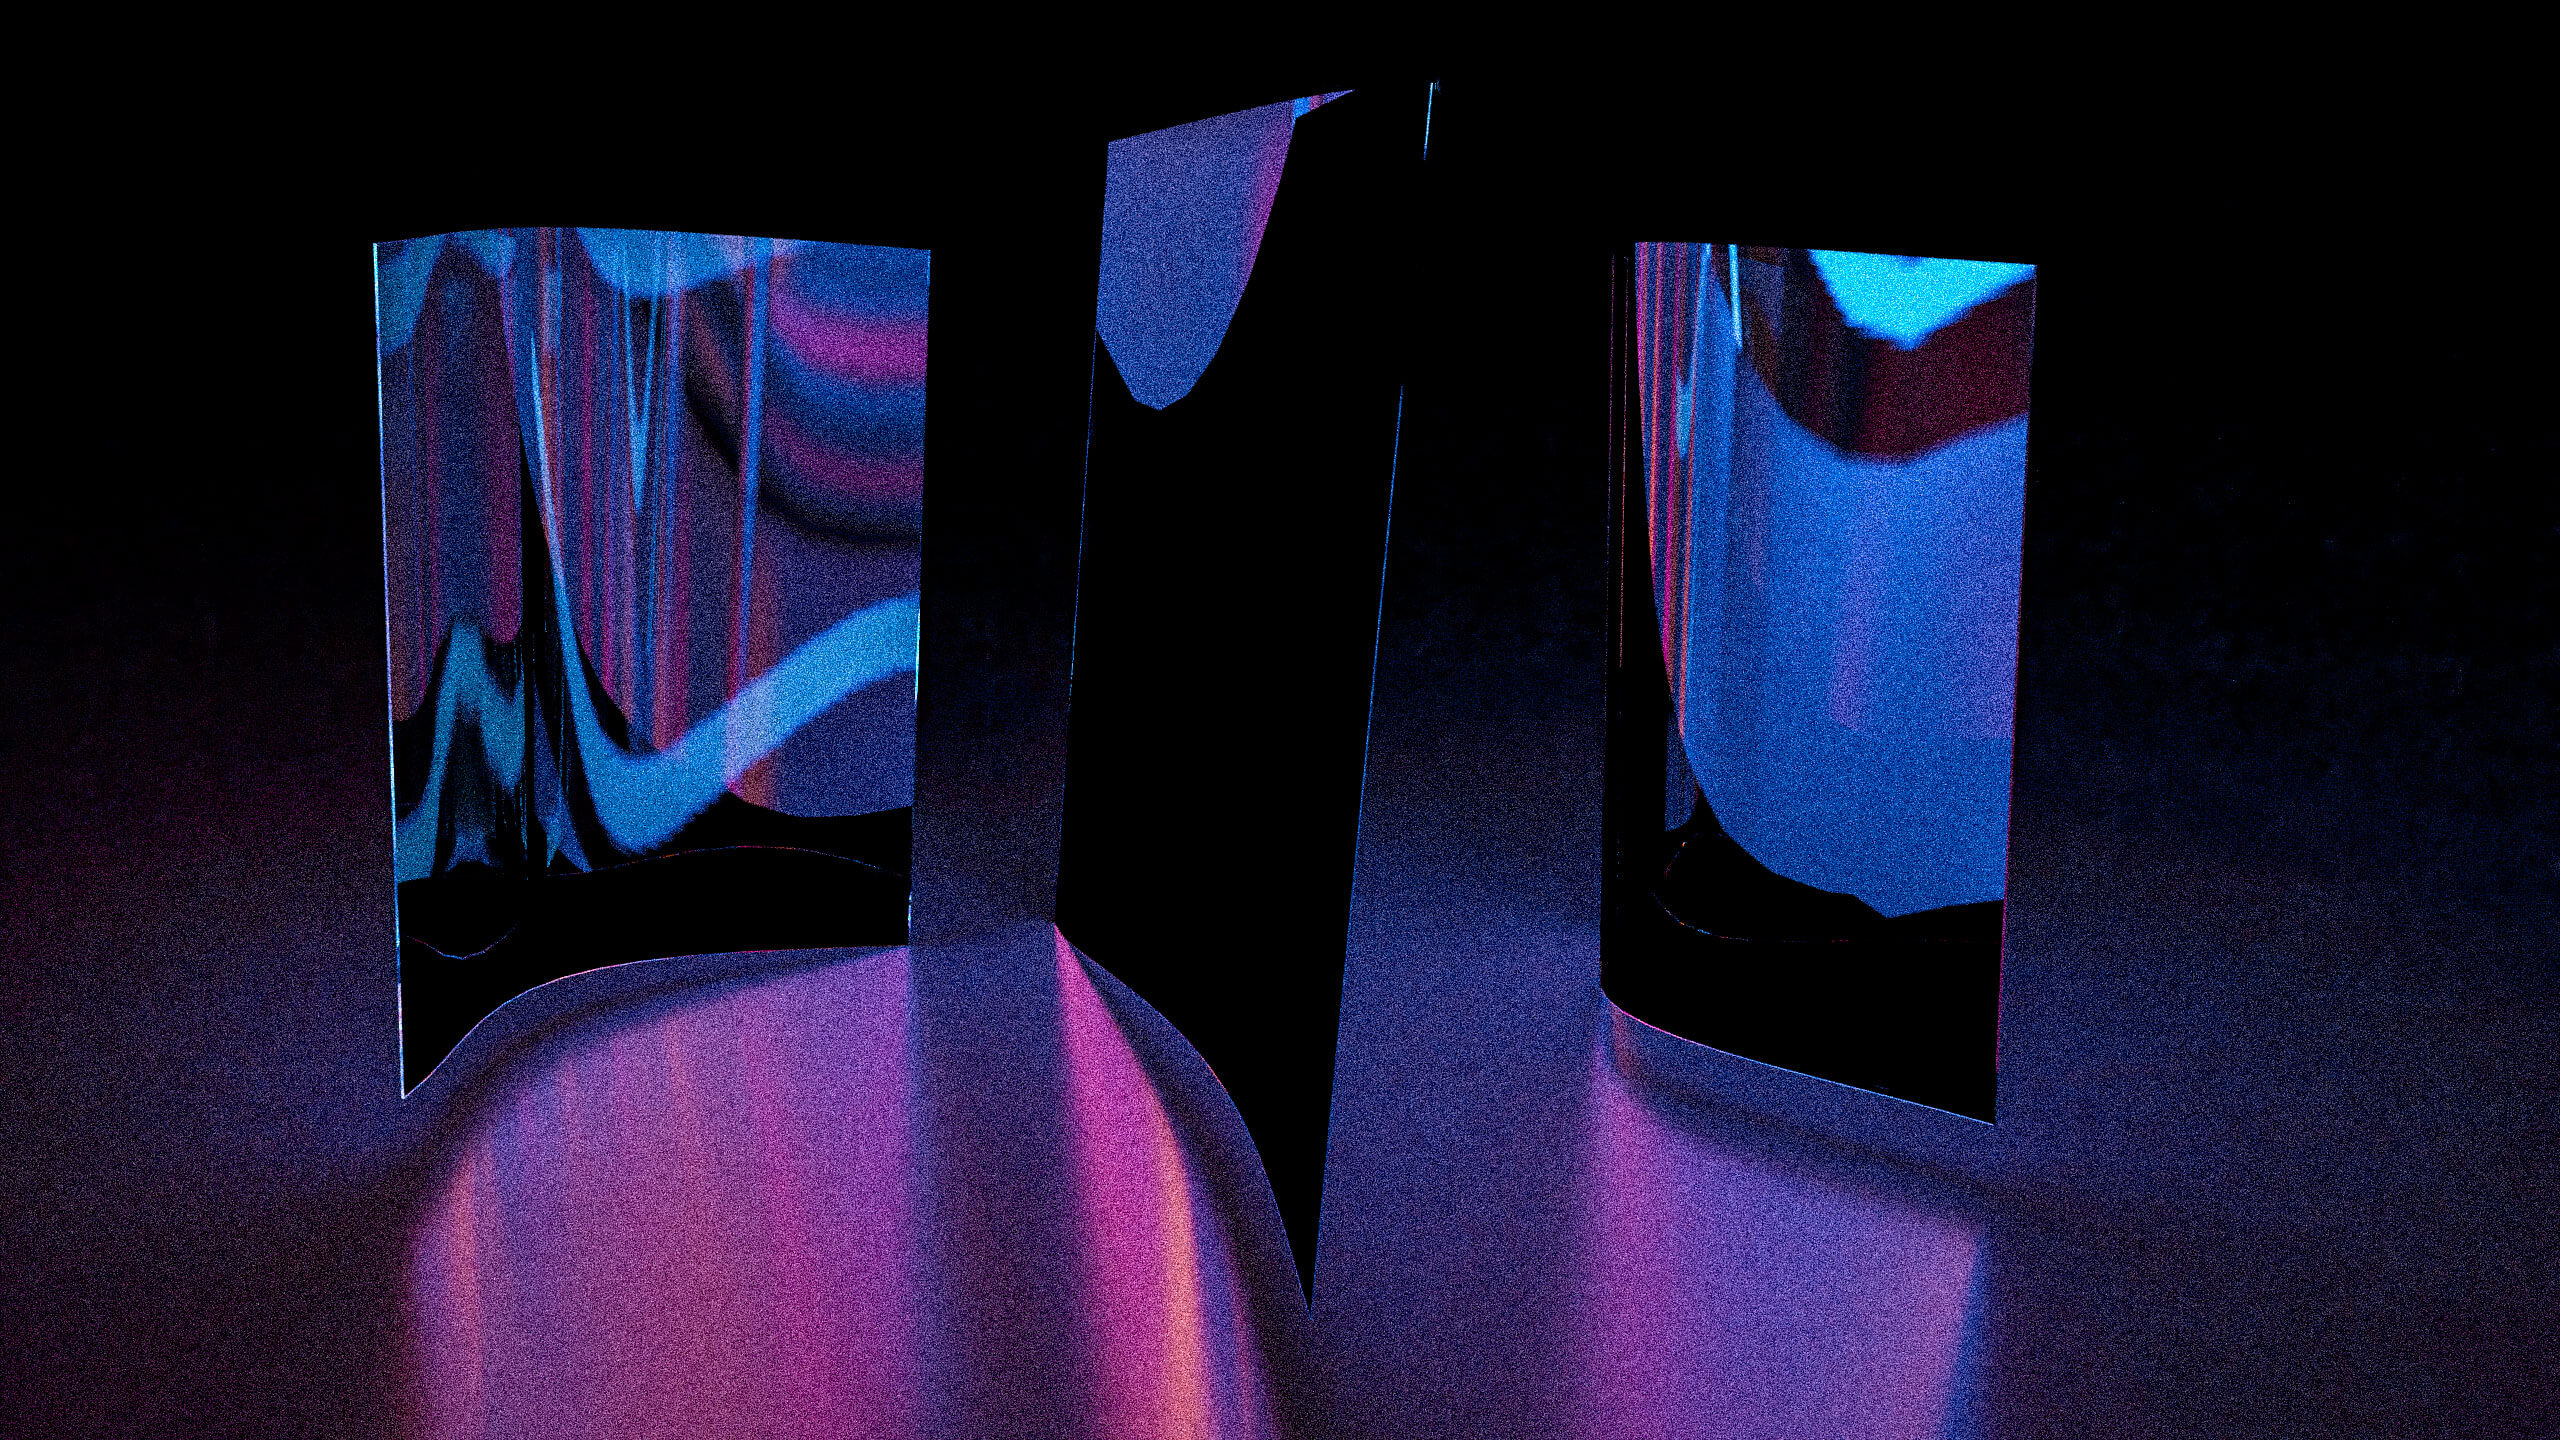 Rendering in blurry violet, pink and blue with reflecting and shiny elements that resemble tiny walls.